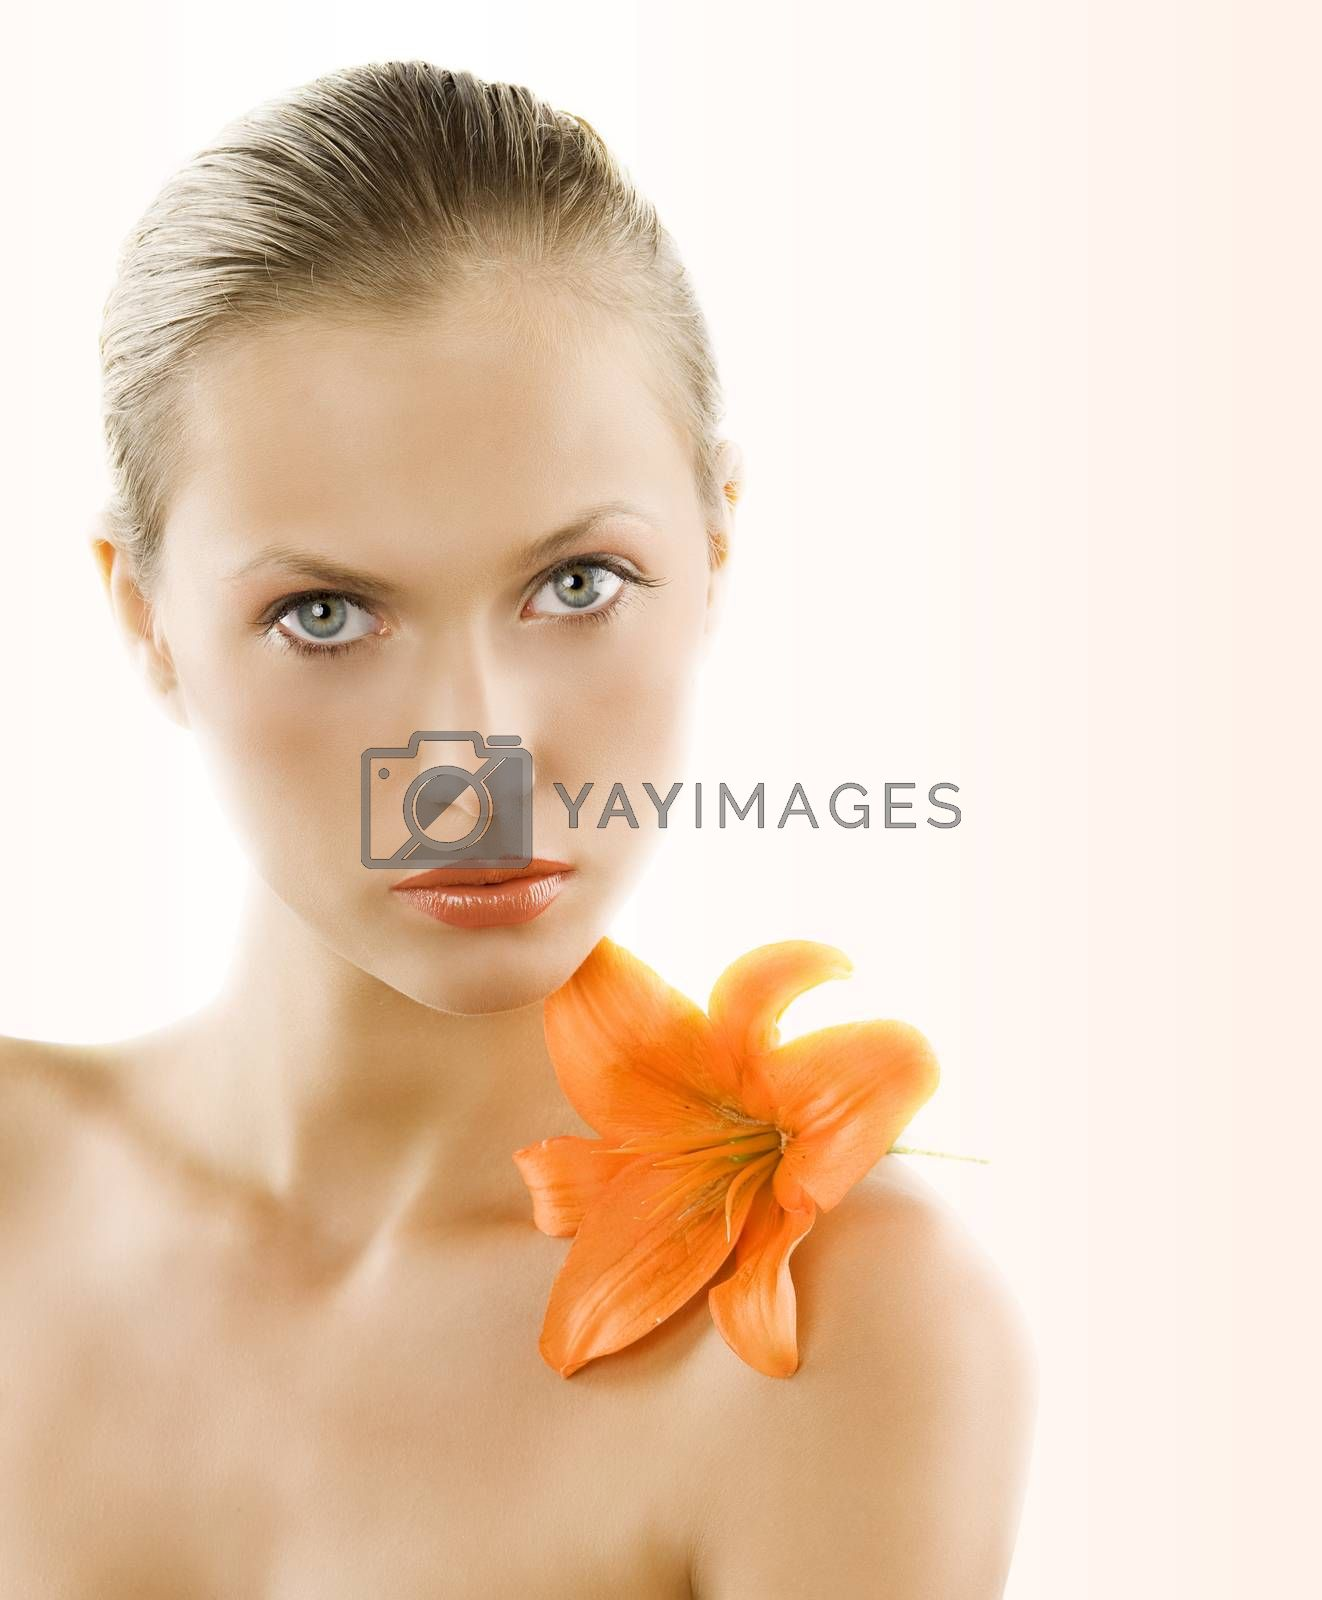 Royalty free image of portrait with orange lily by fotoCD